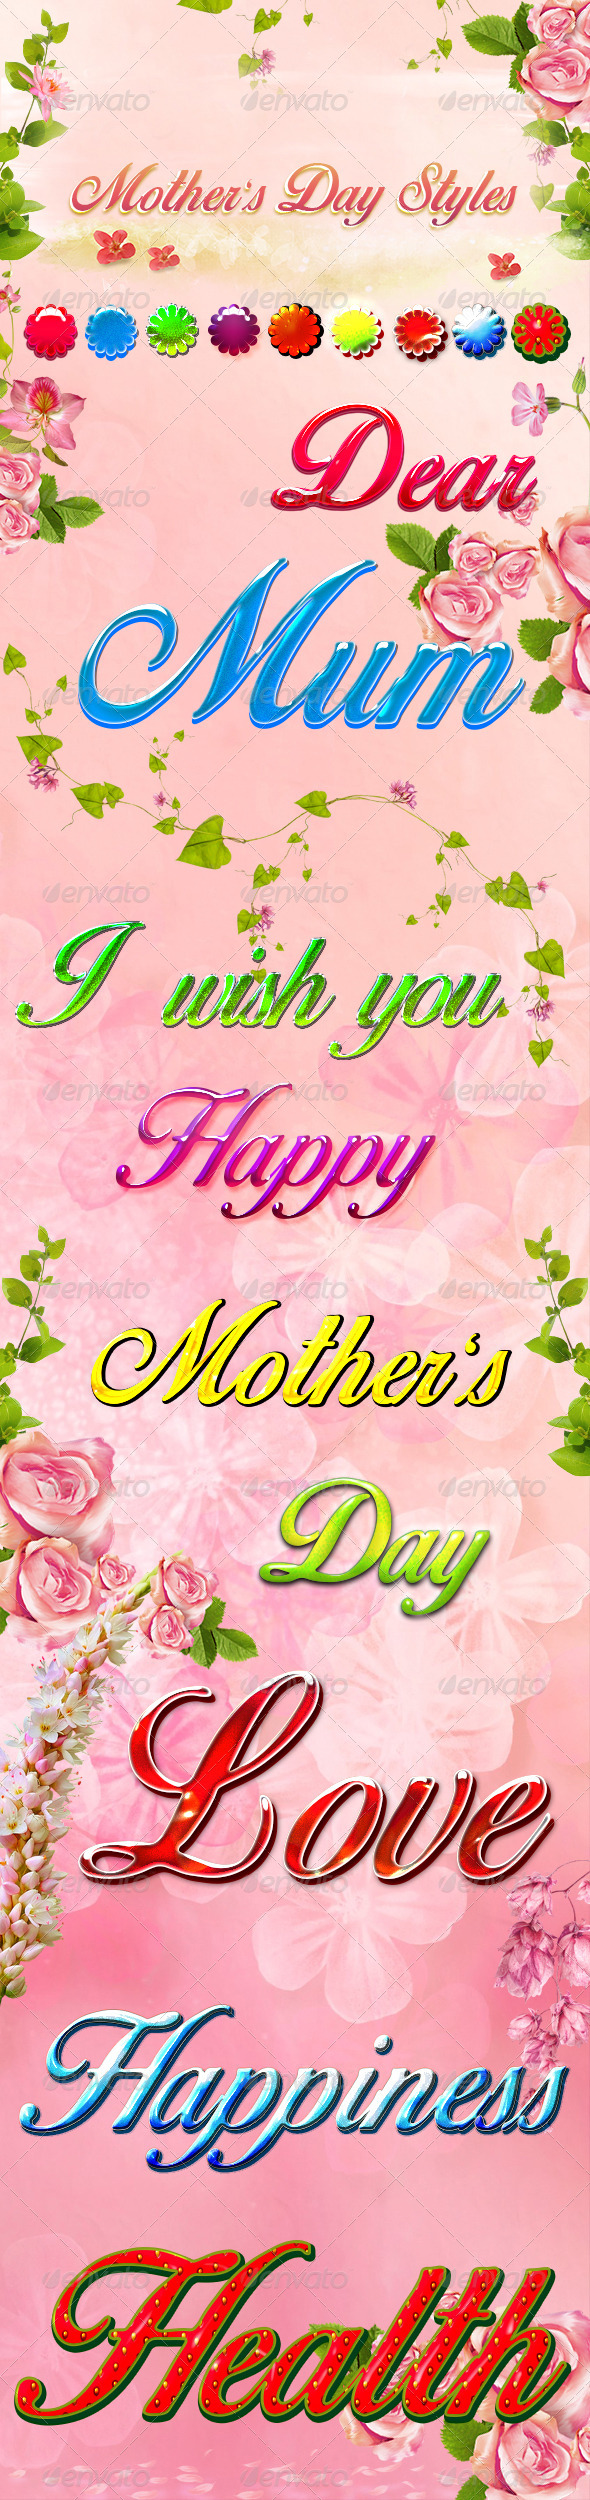 GraphicRiver Mother s Day Styles 7194326